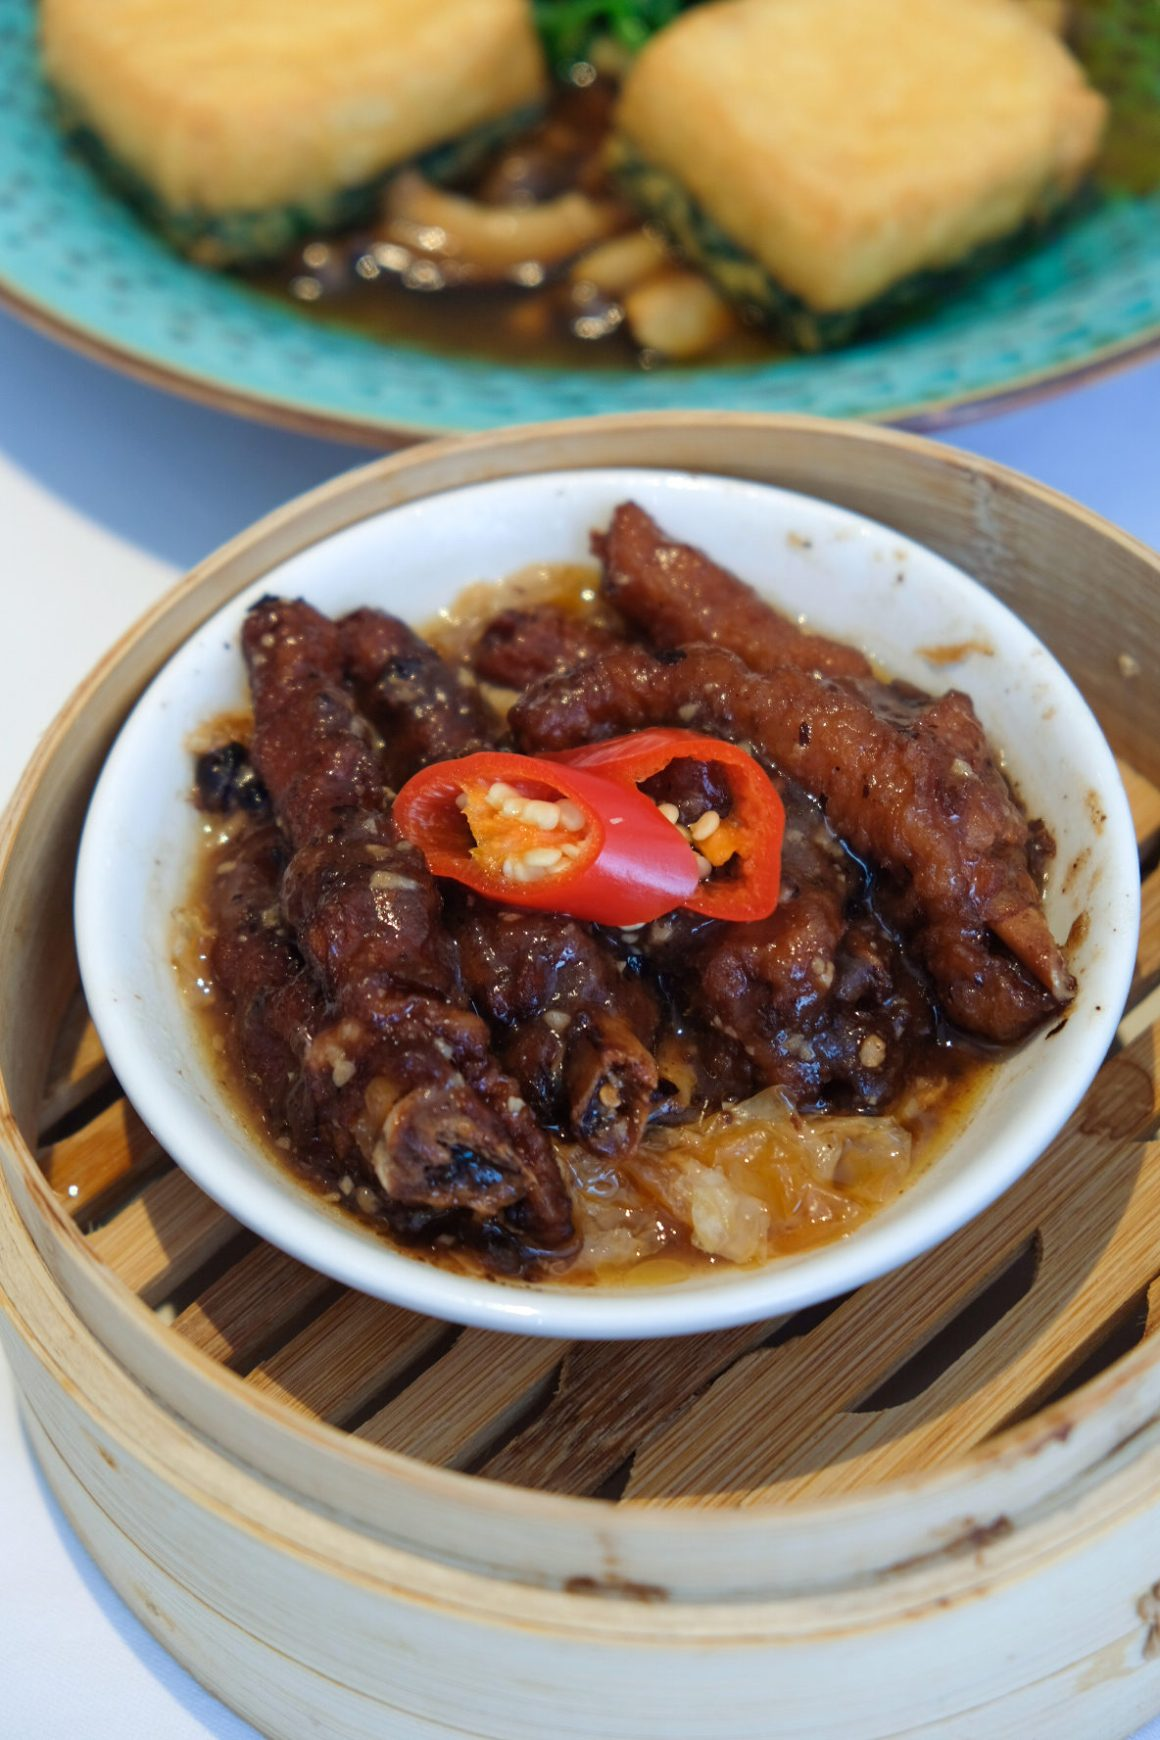 Chicken Feet with Black Bean and Chilli 豉椒鳳爪 ($6)